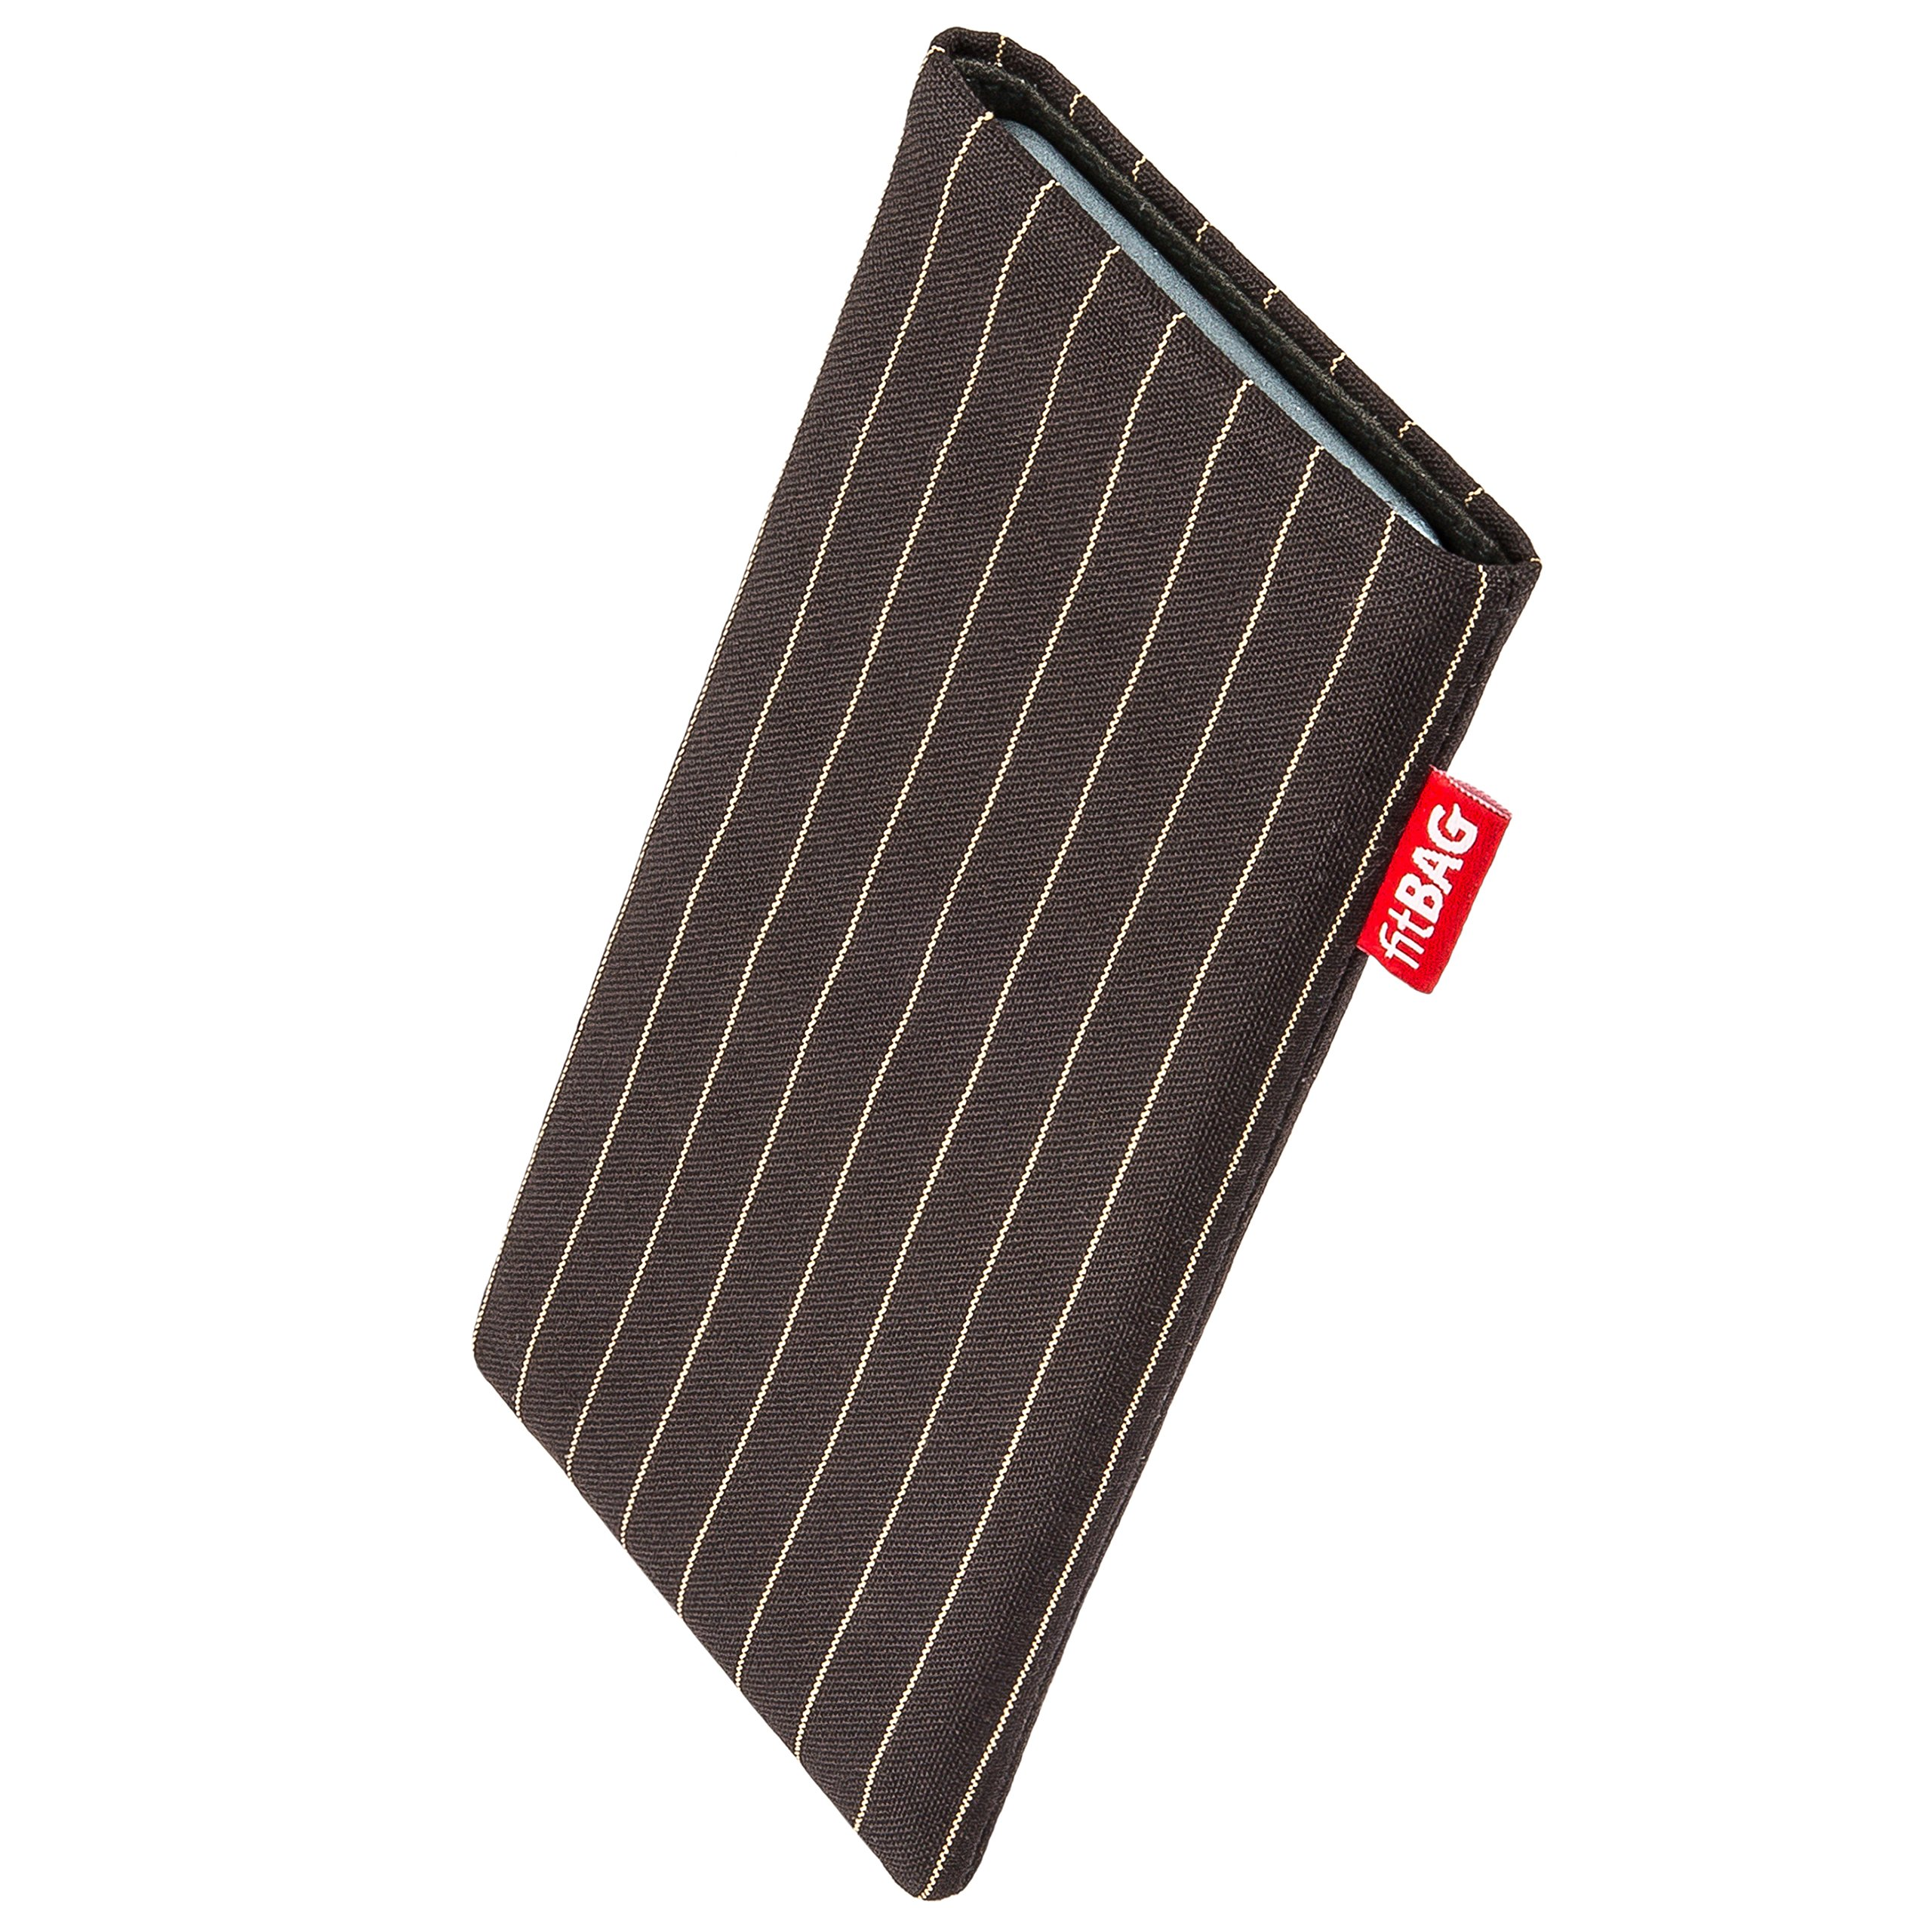 fitBAG Twist Brown custom tailored sleeve for Thomson Connect TH701. Fine suit fabric pouch with integrated MicroFibre lining for display cleaning